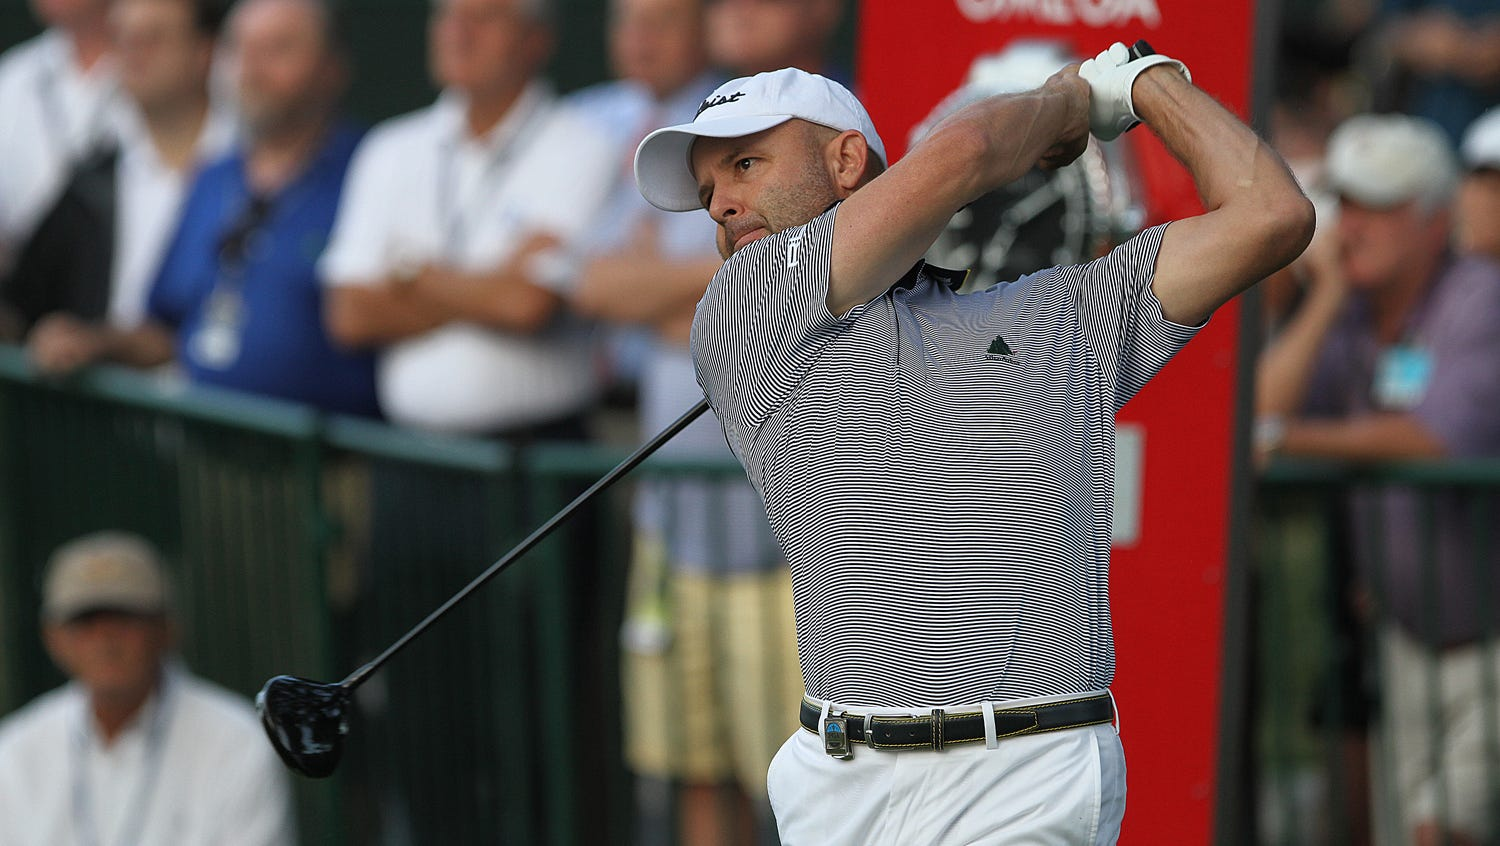 Rob Labritz hits the first ball off the tee at the 95th PGA Championship.